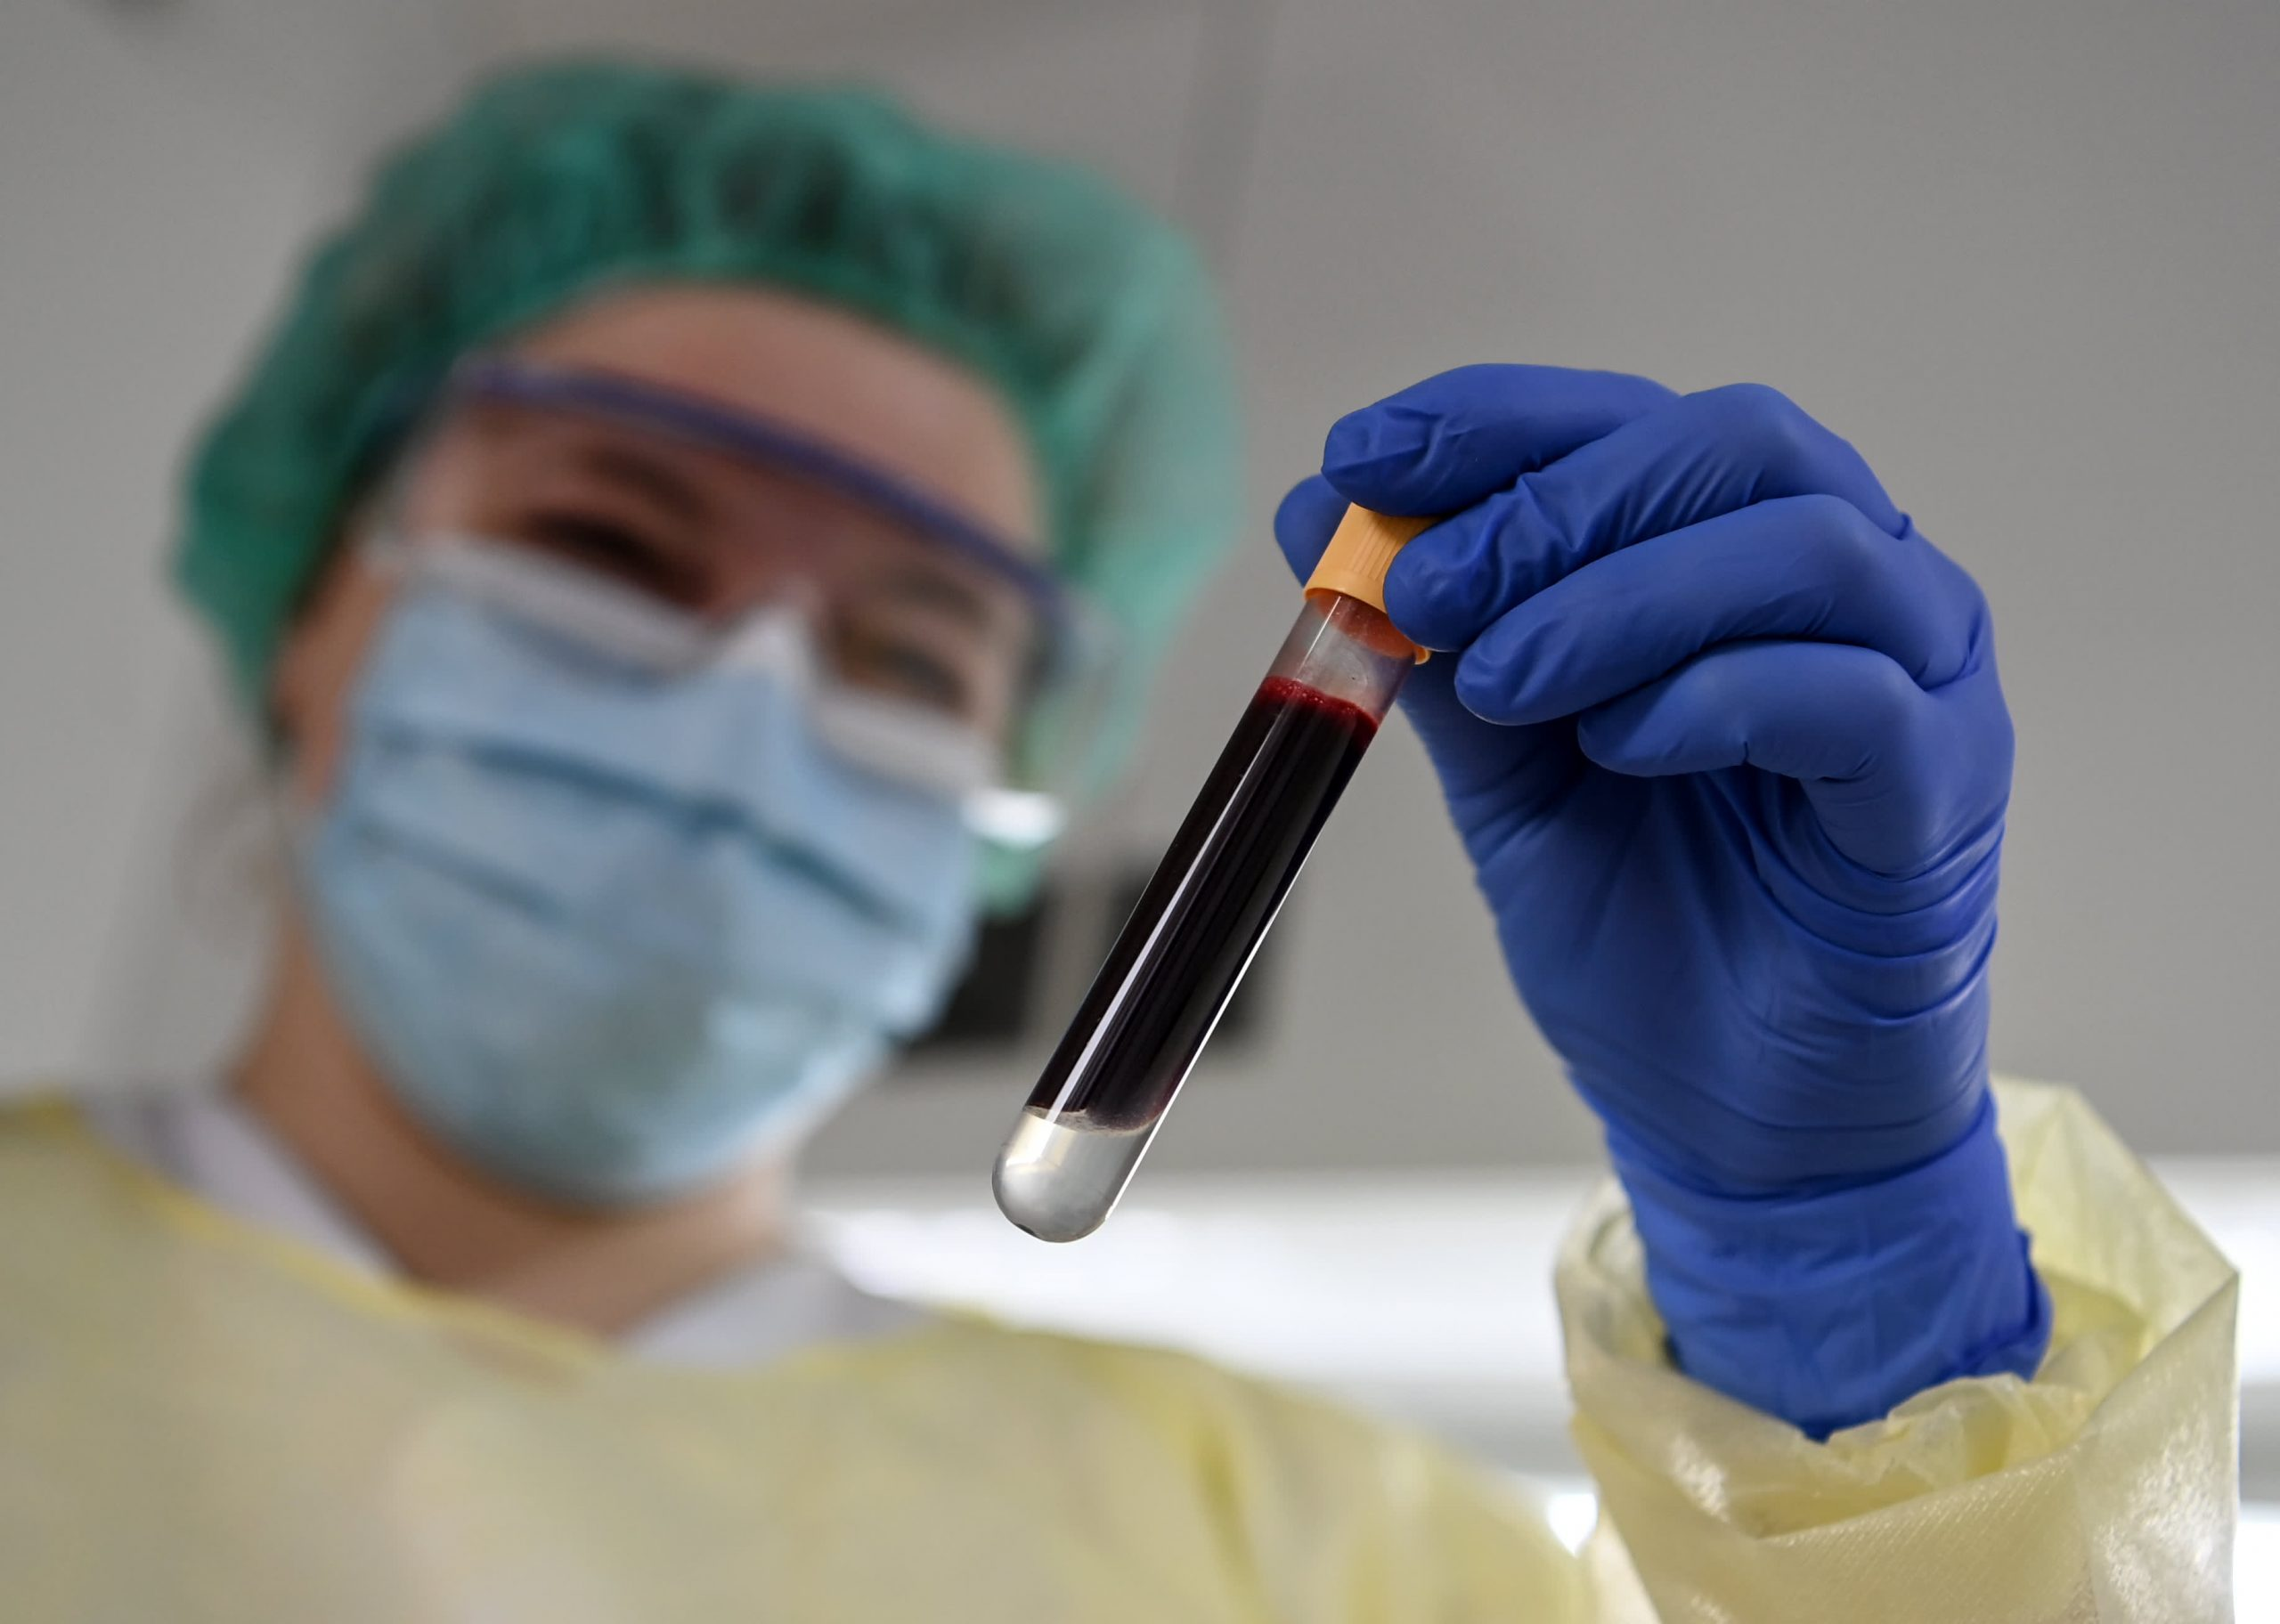 theranos-is-history-but-big-blood-testing-breakthroughs-are-coming